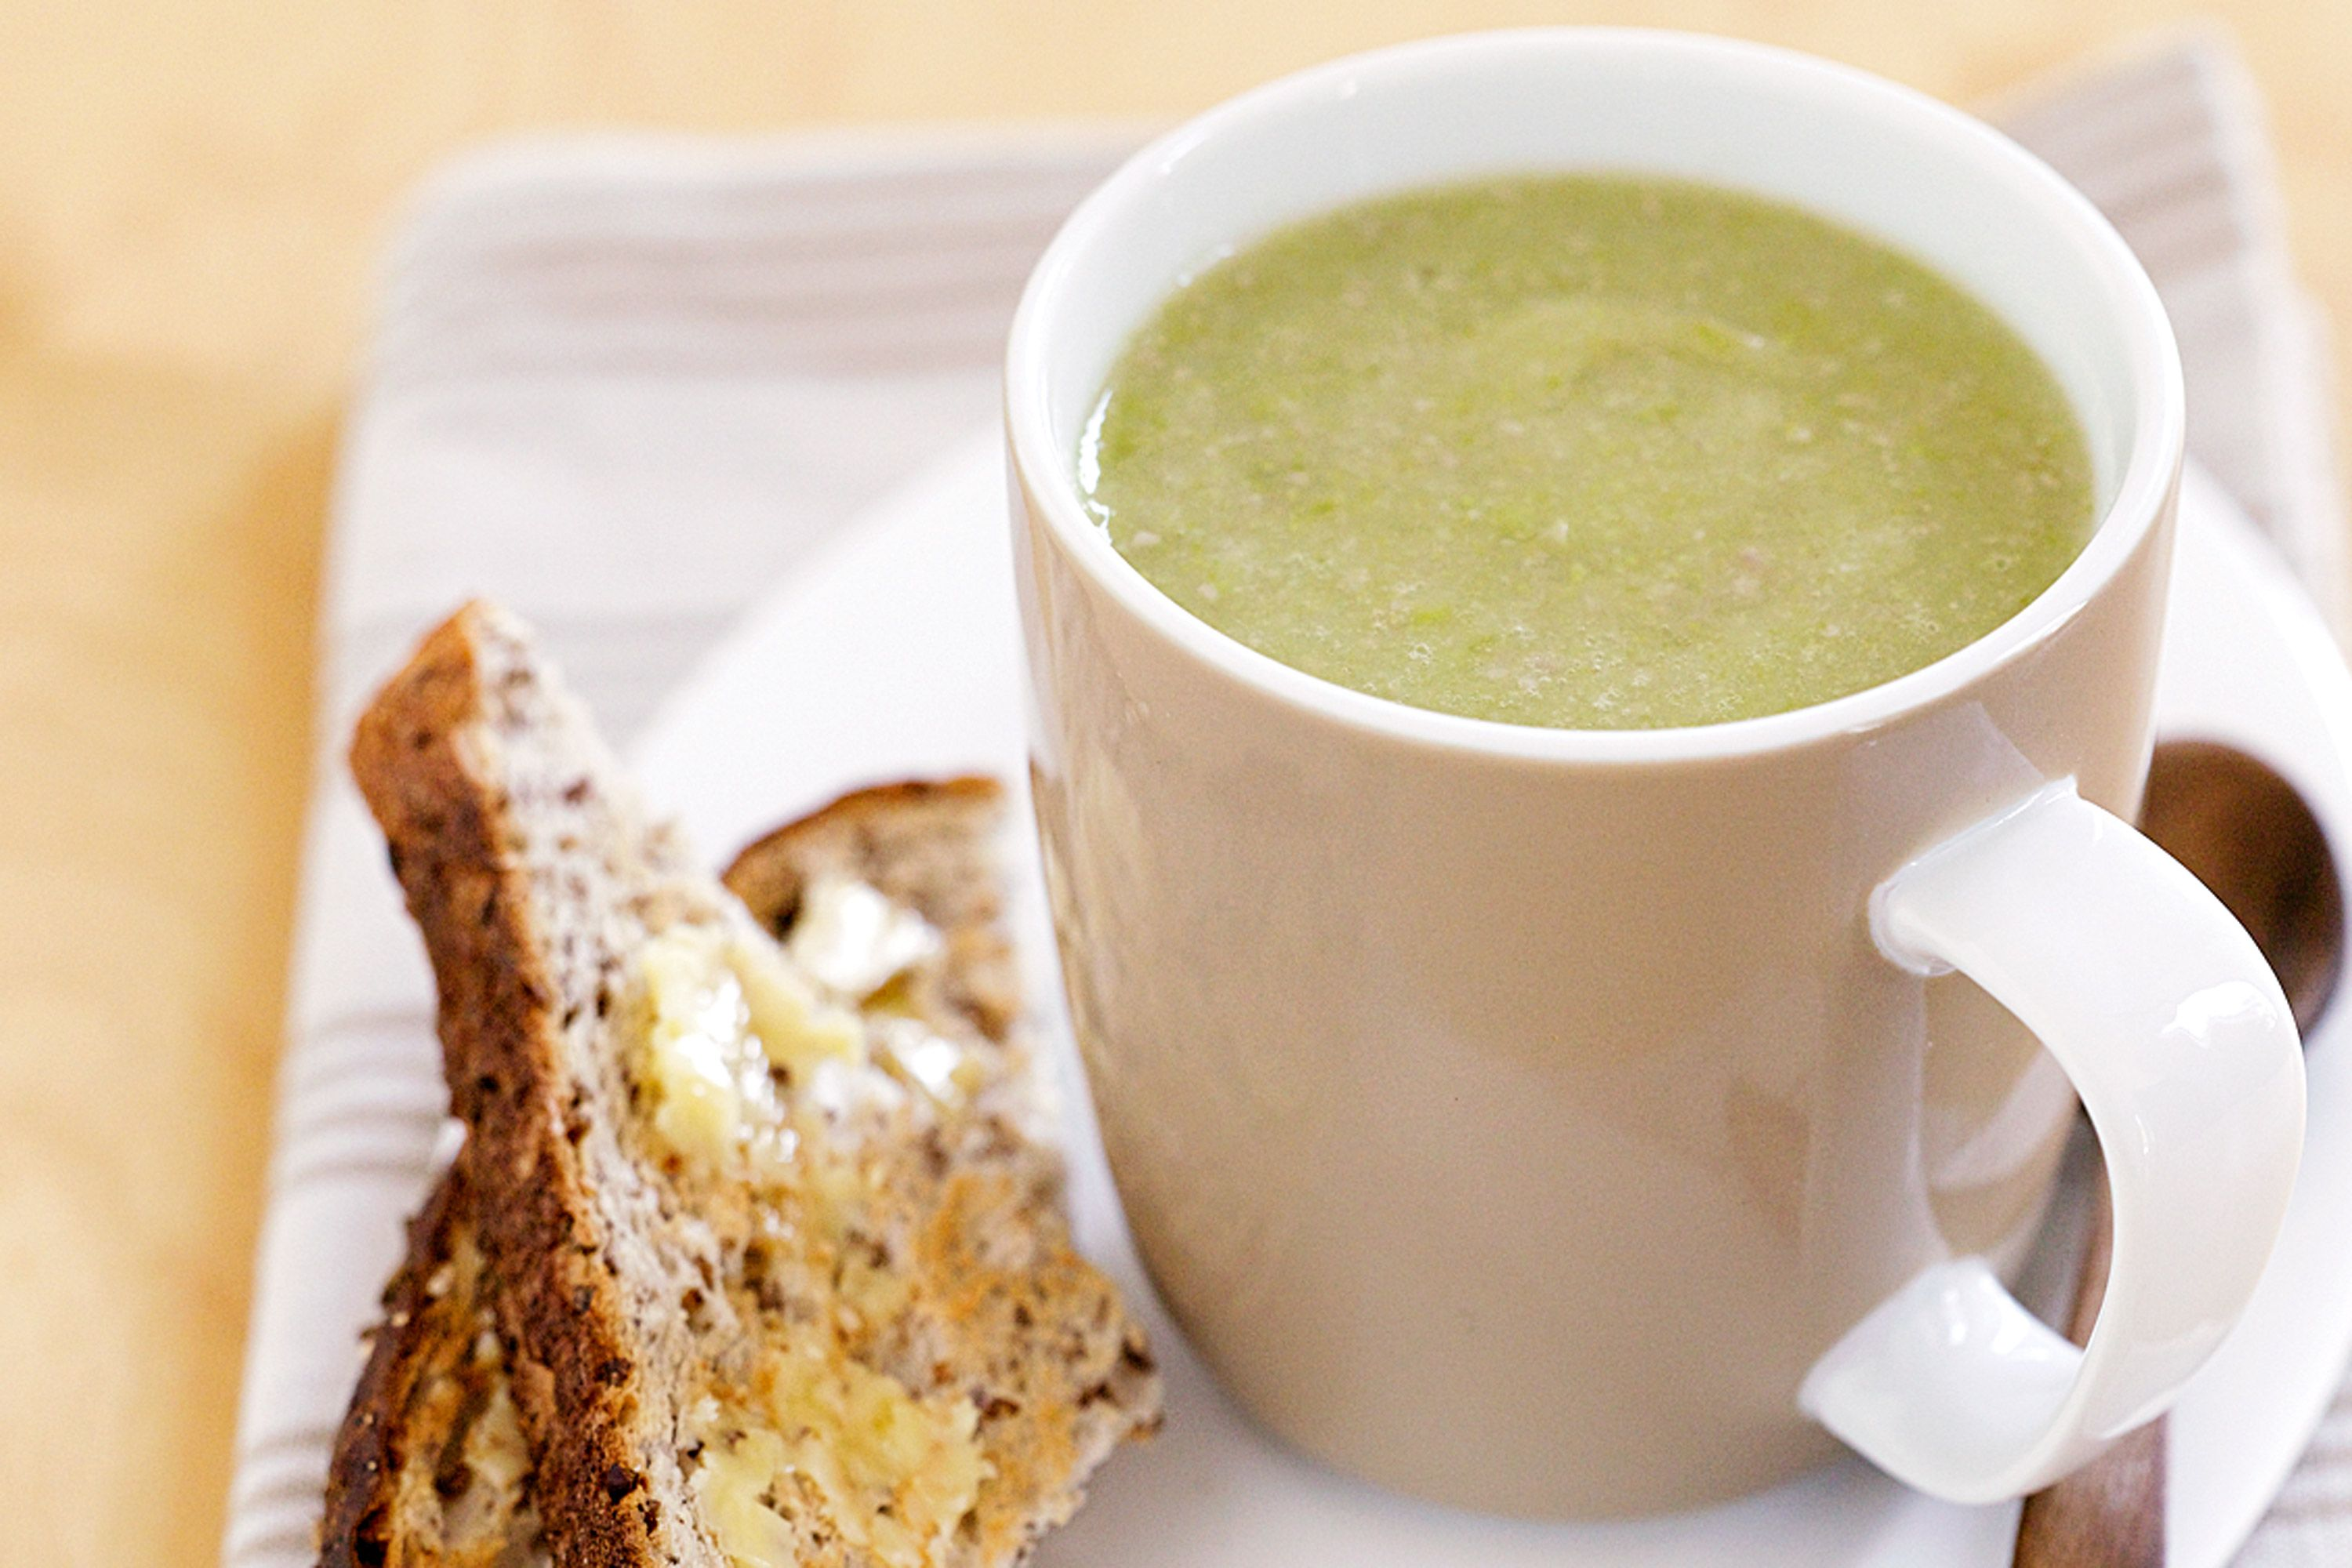 Slurp your way into winter with this speedy pea and ham soup.